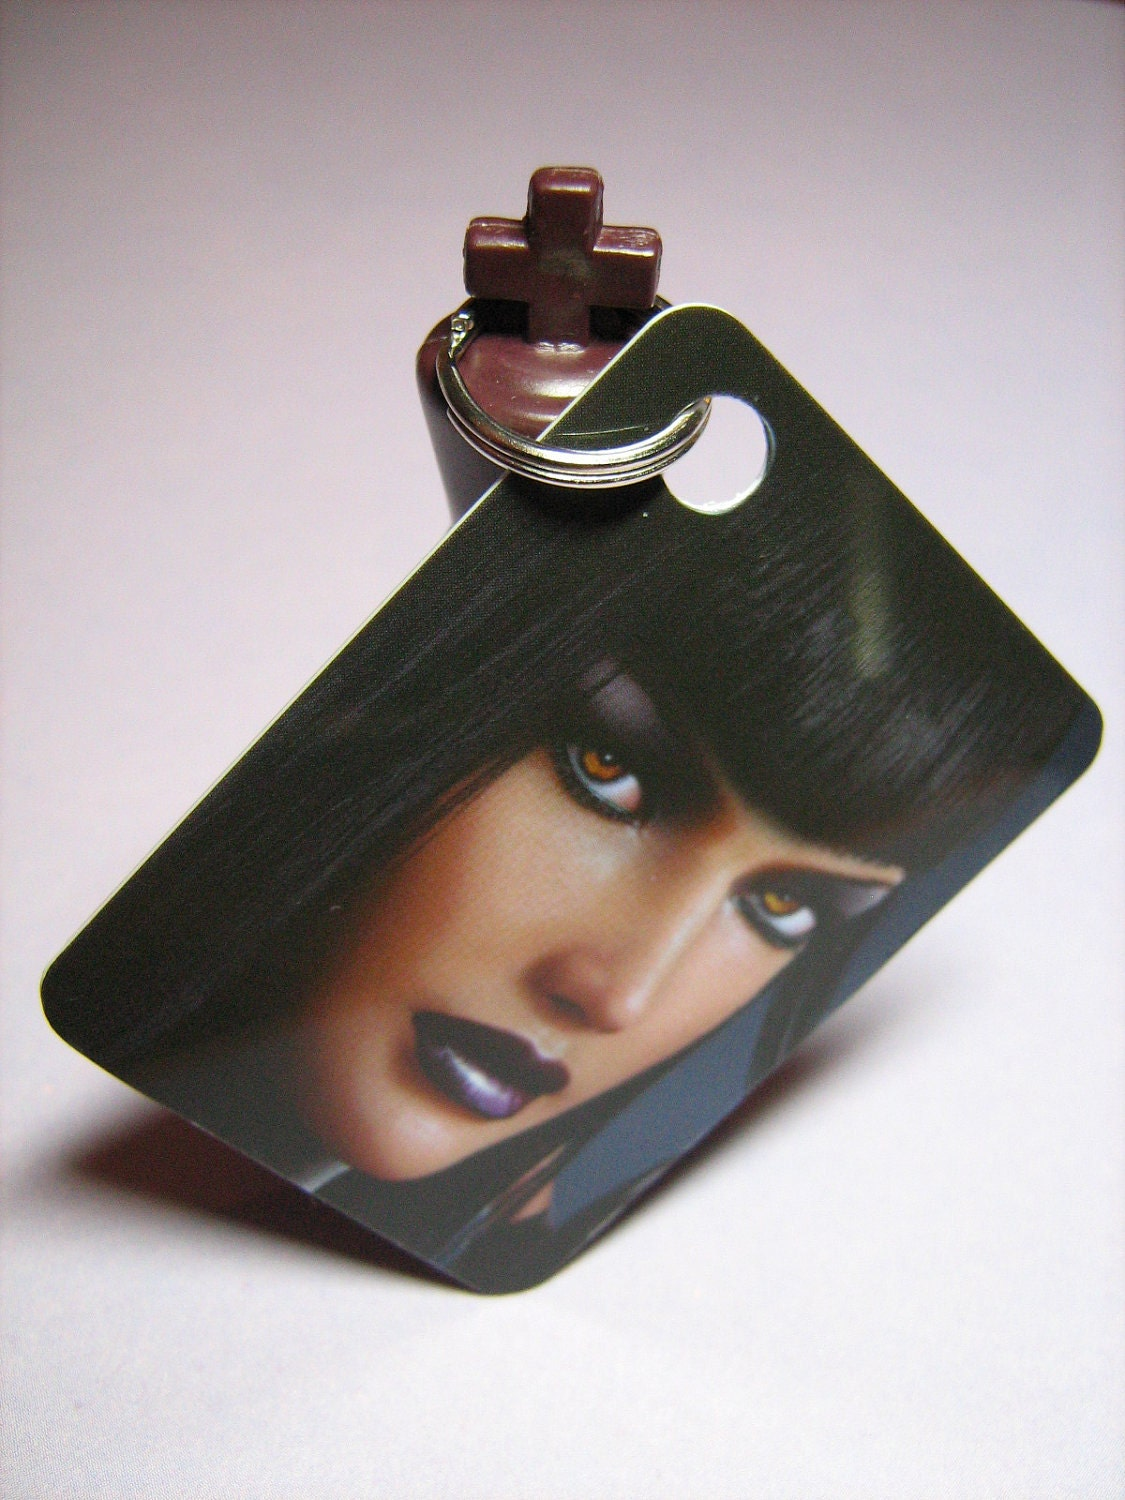 Keychain: Upcycled City of Heroes Game Card Featuring Desdemona